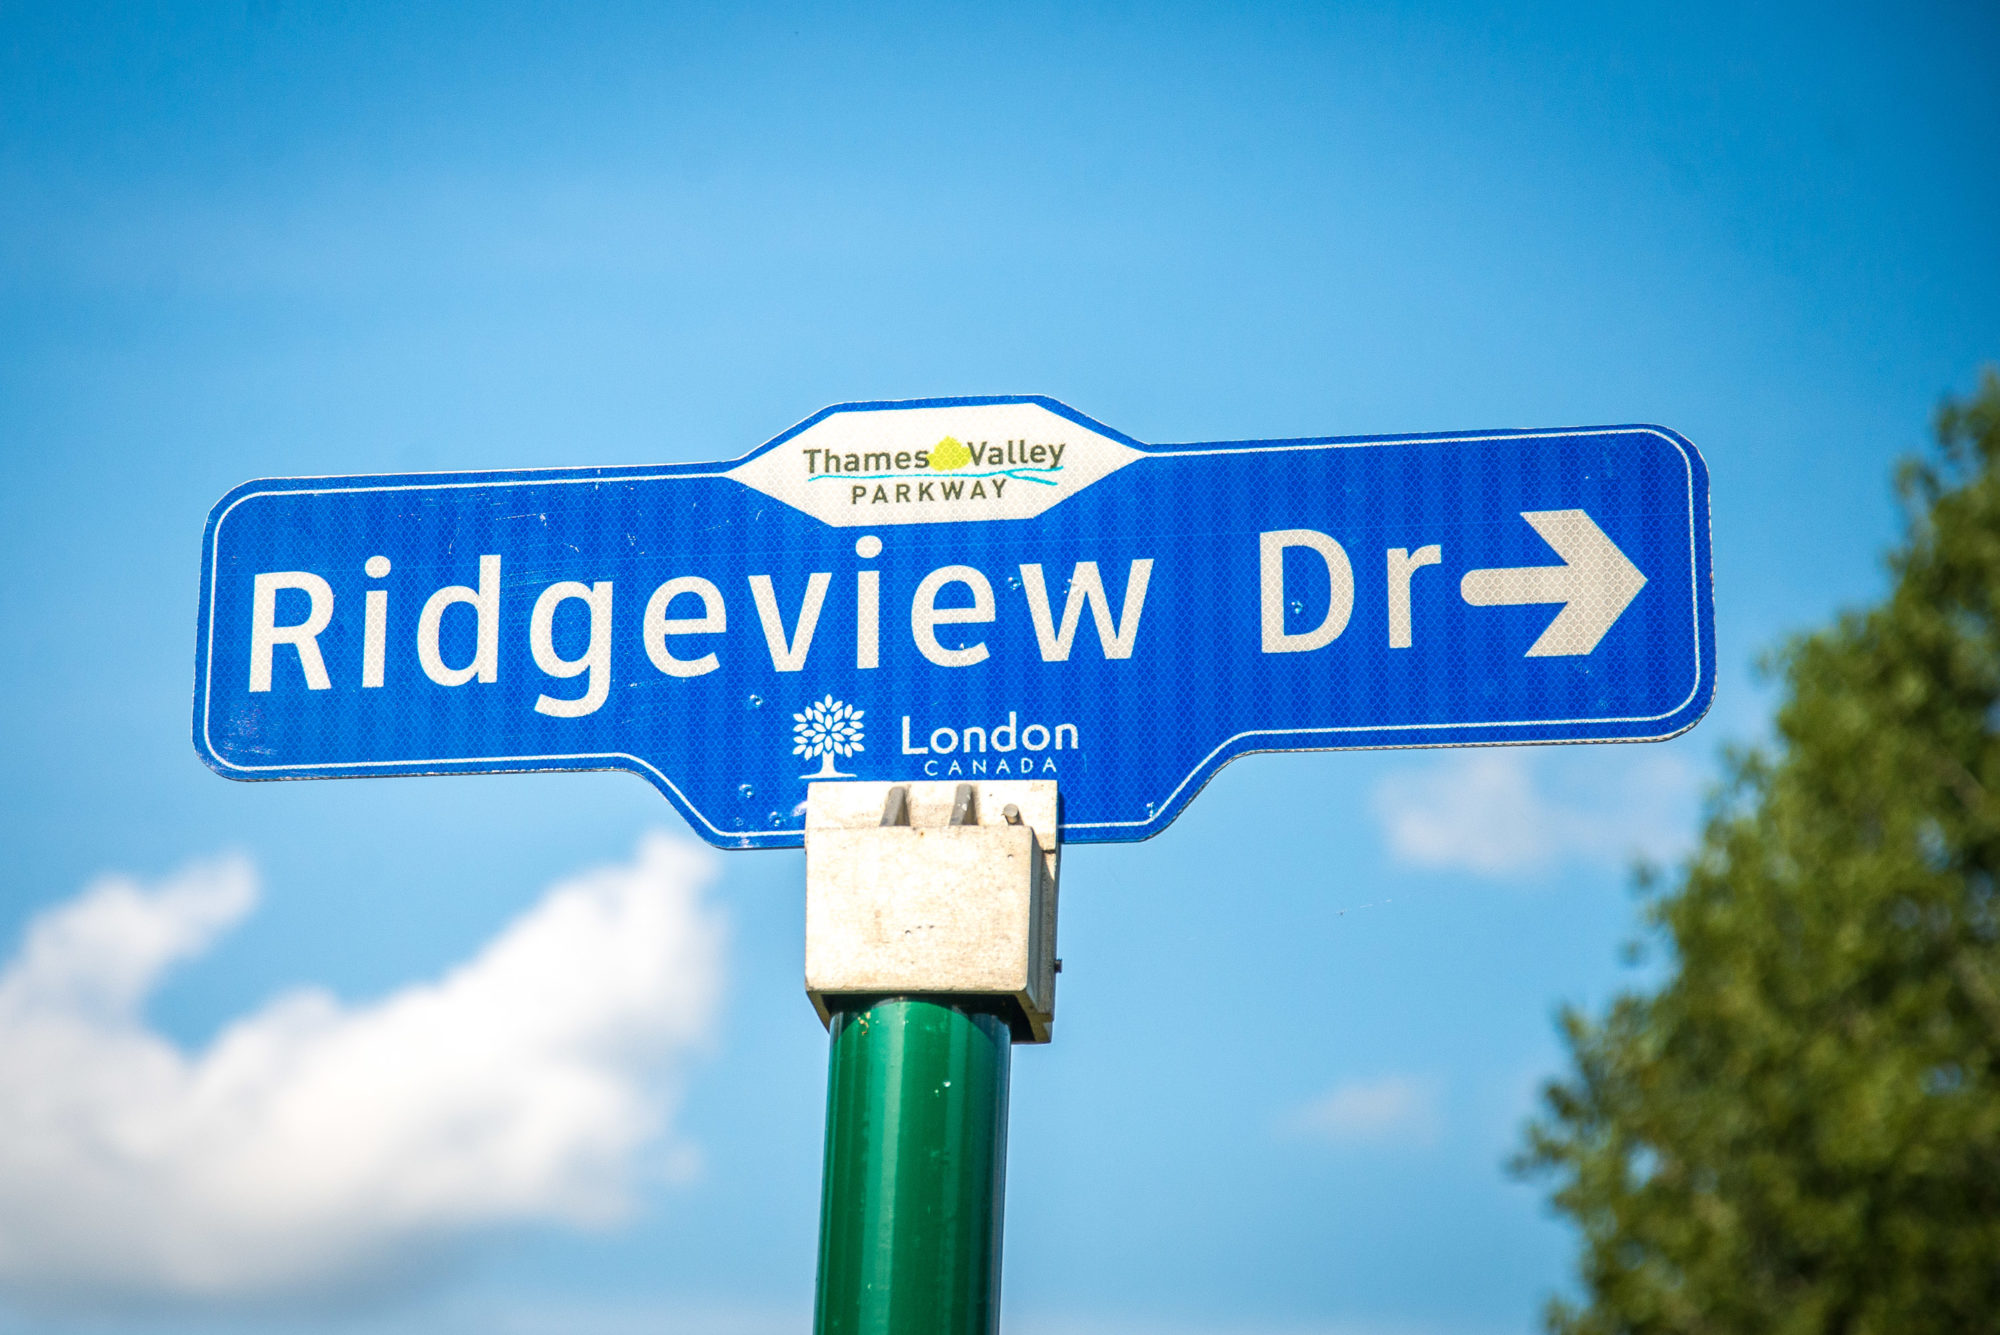 Ridgeview Drive street sign in Carling Heights